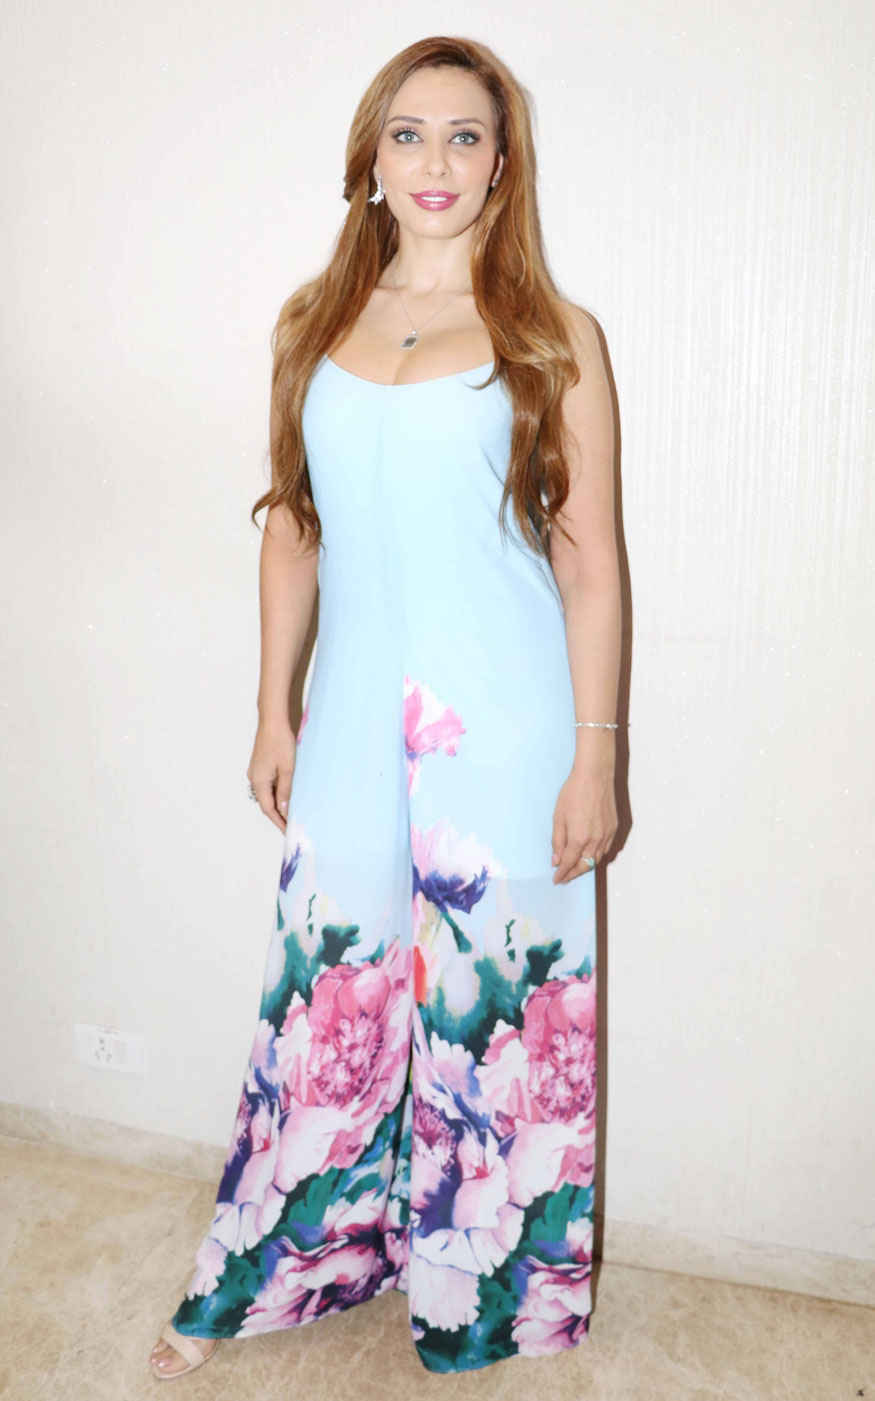 Iulia Vantur Poses for Screening of short film Parineeti Hosted by Playground Digital Cinema